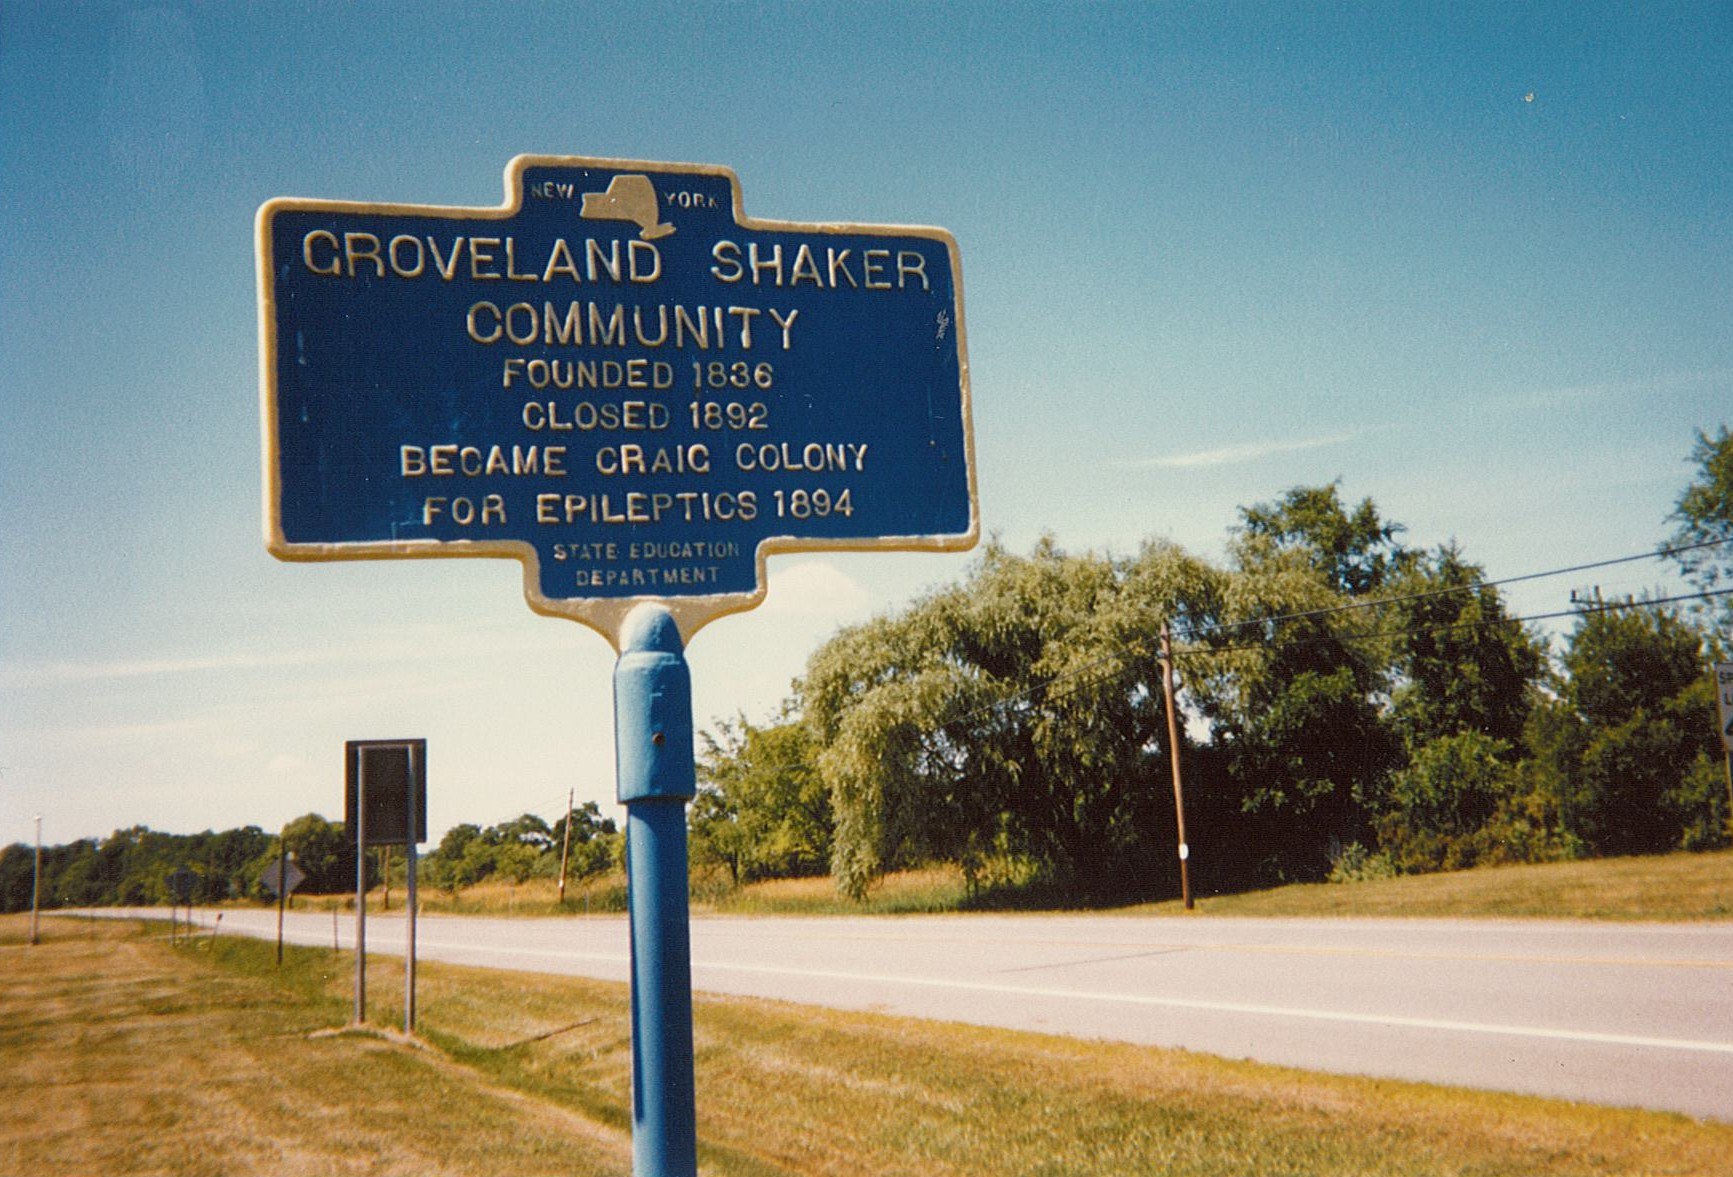 Image of blue and yellow historical marker sign for Groveland Shaker Community site